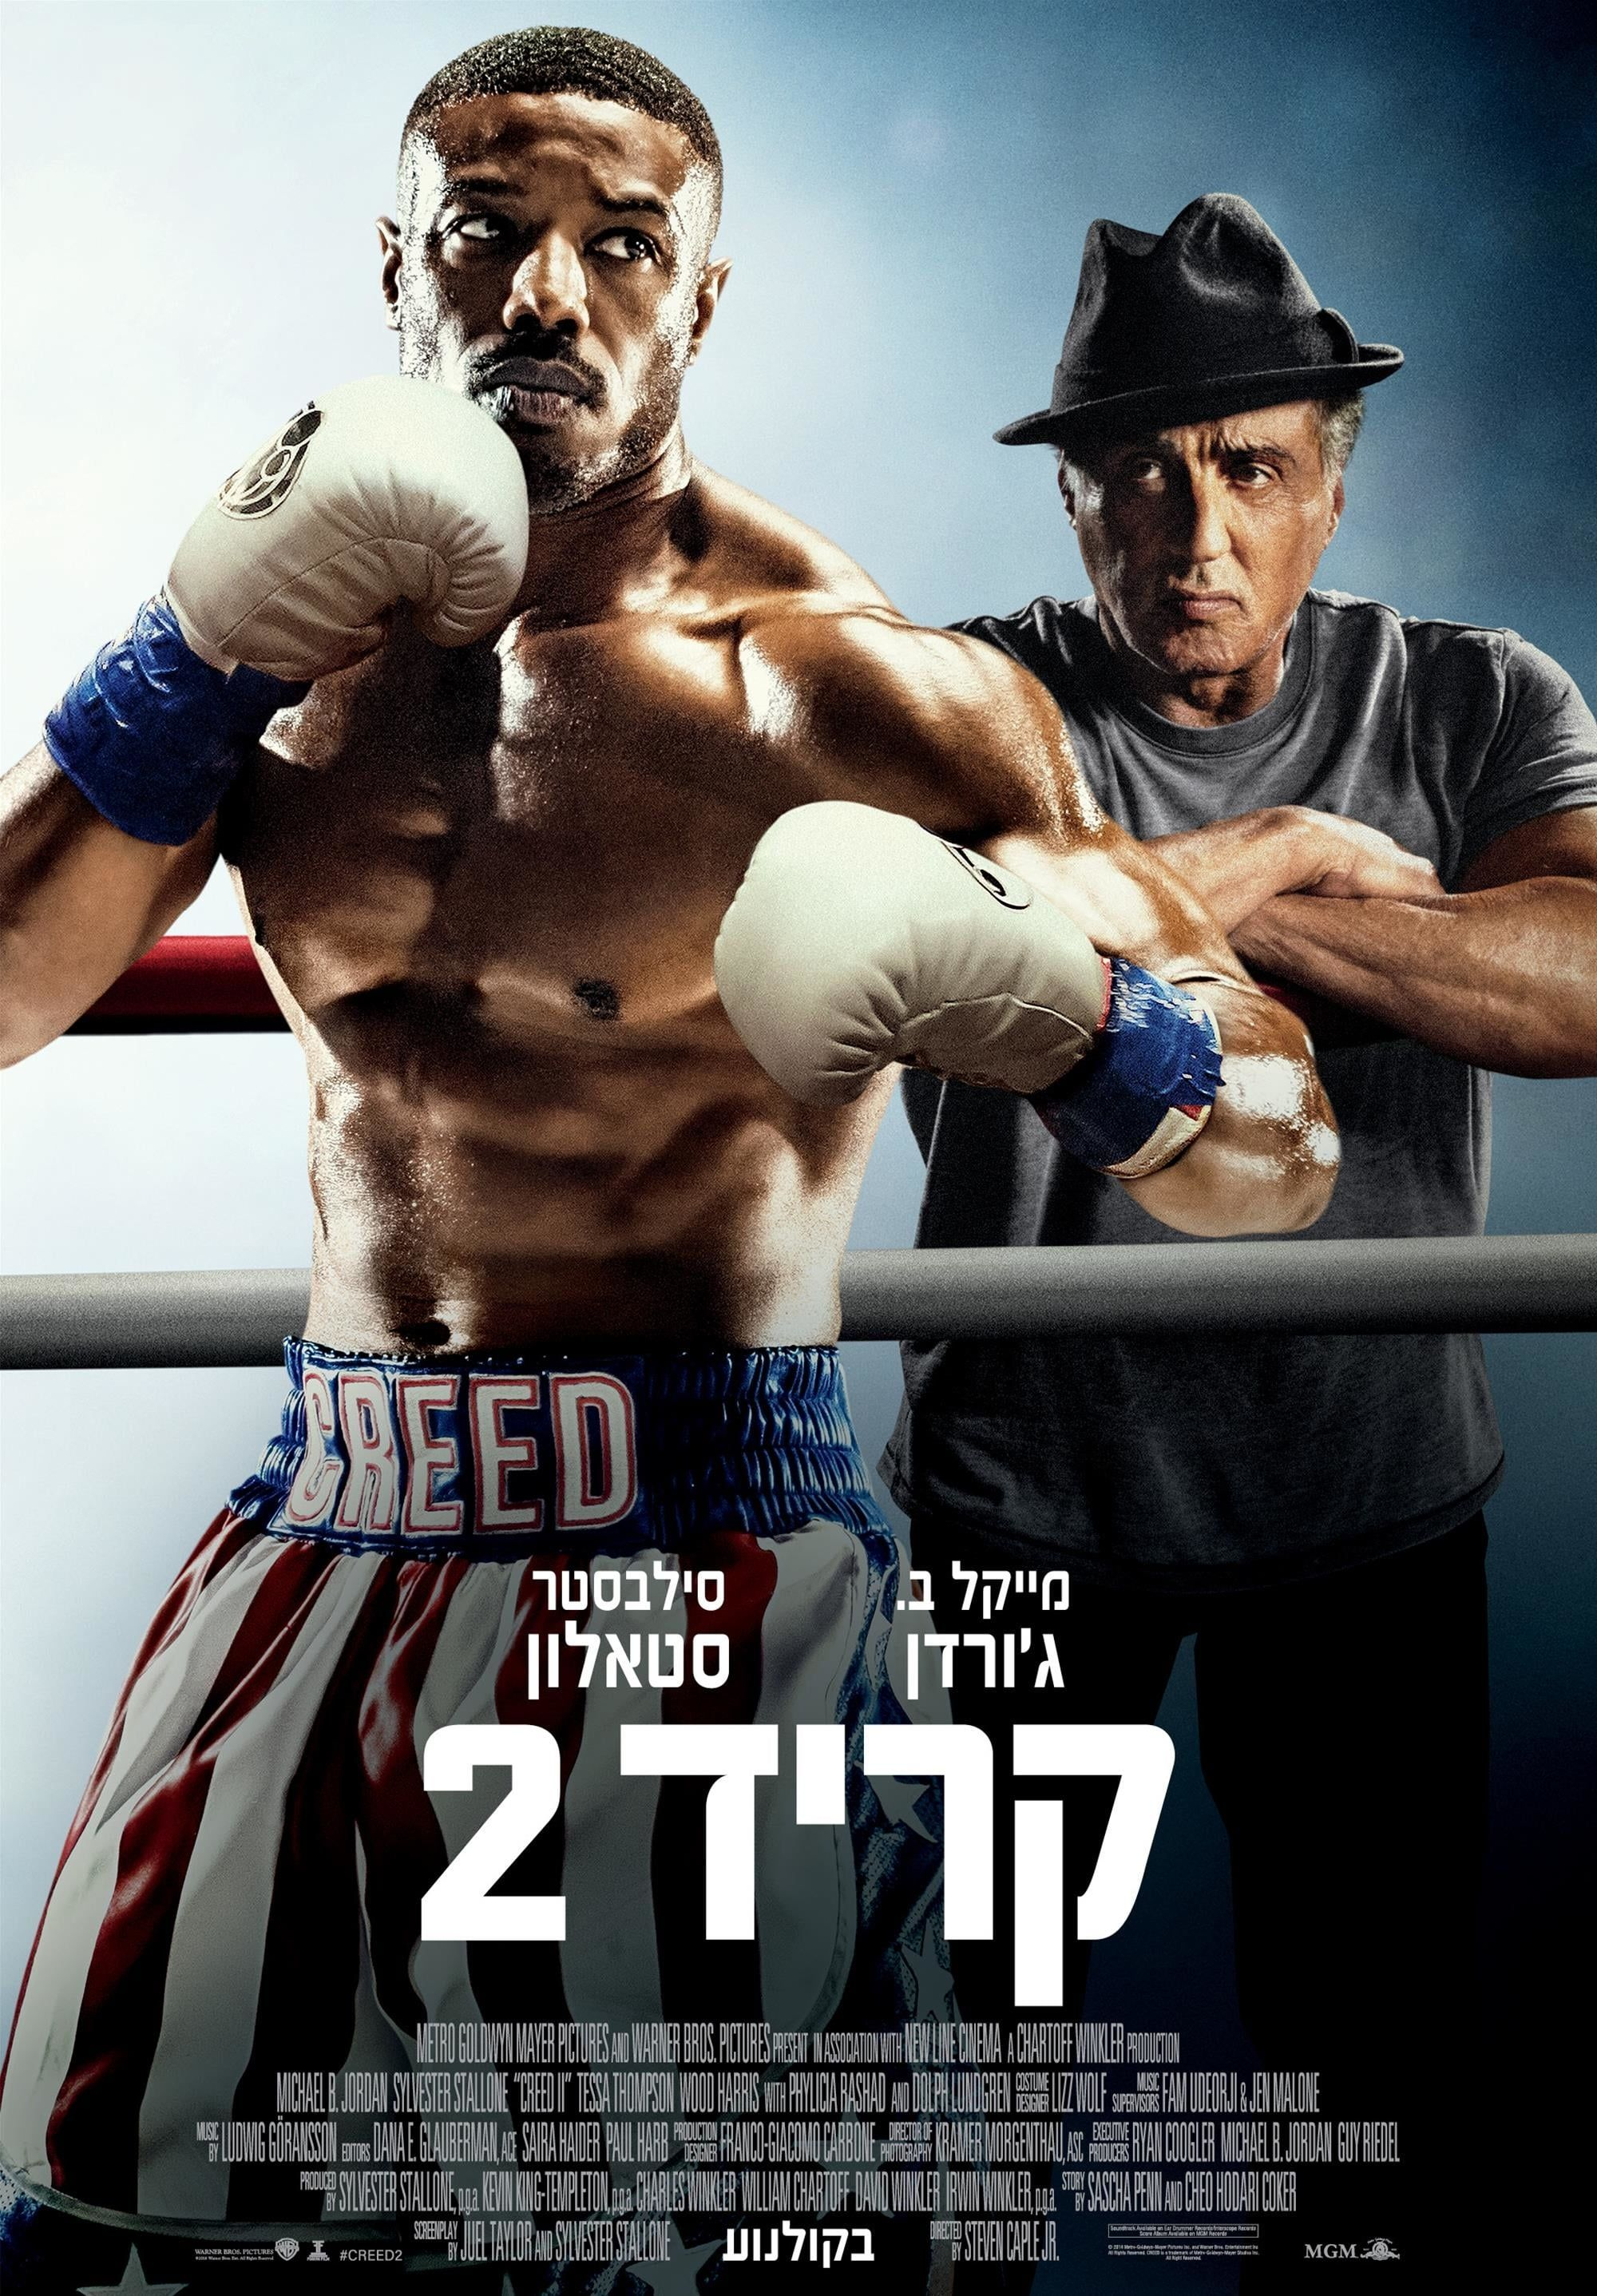 watch creed 2 online for free hd